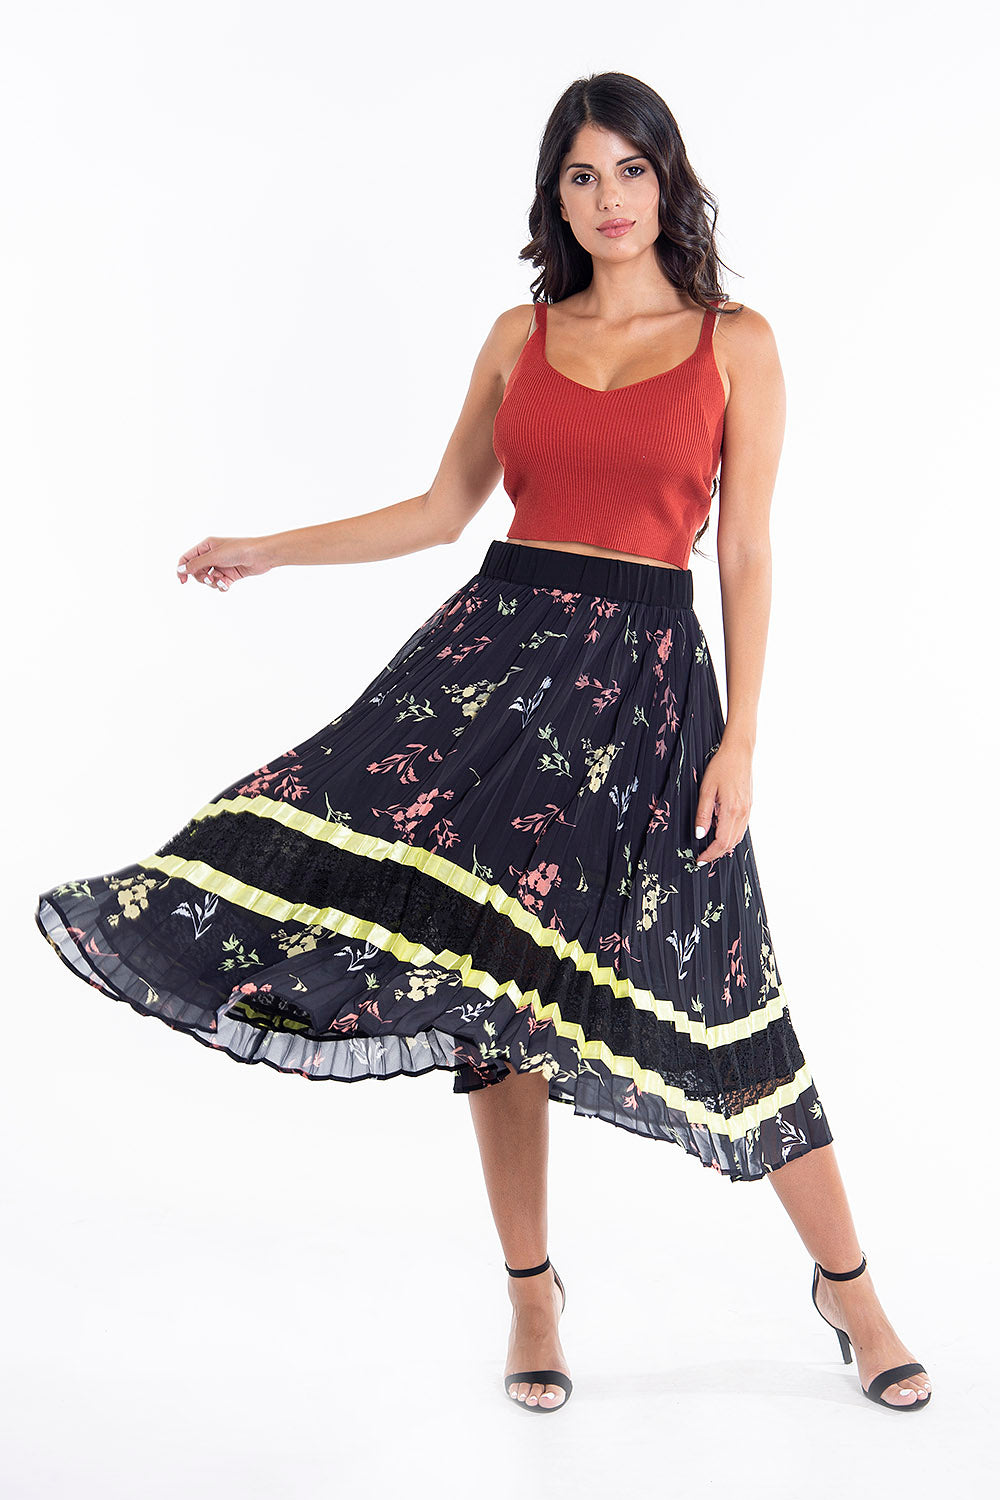 Sh pleated floral black midi skirt with lace detail